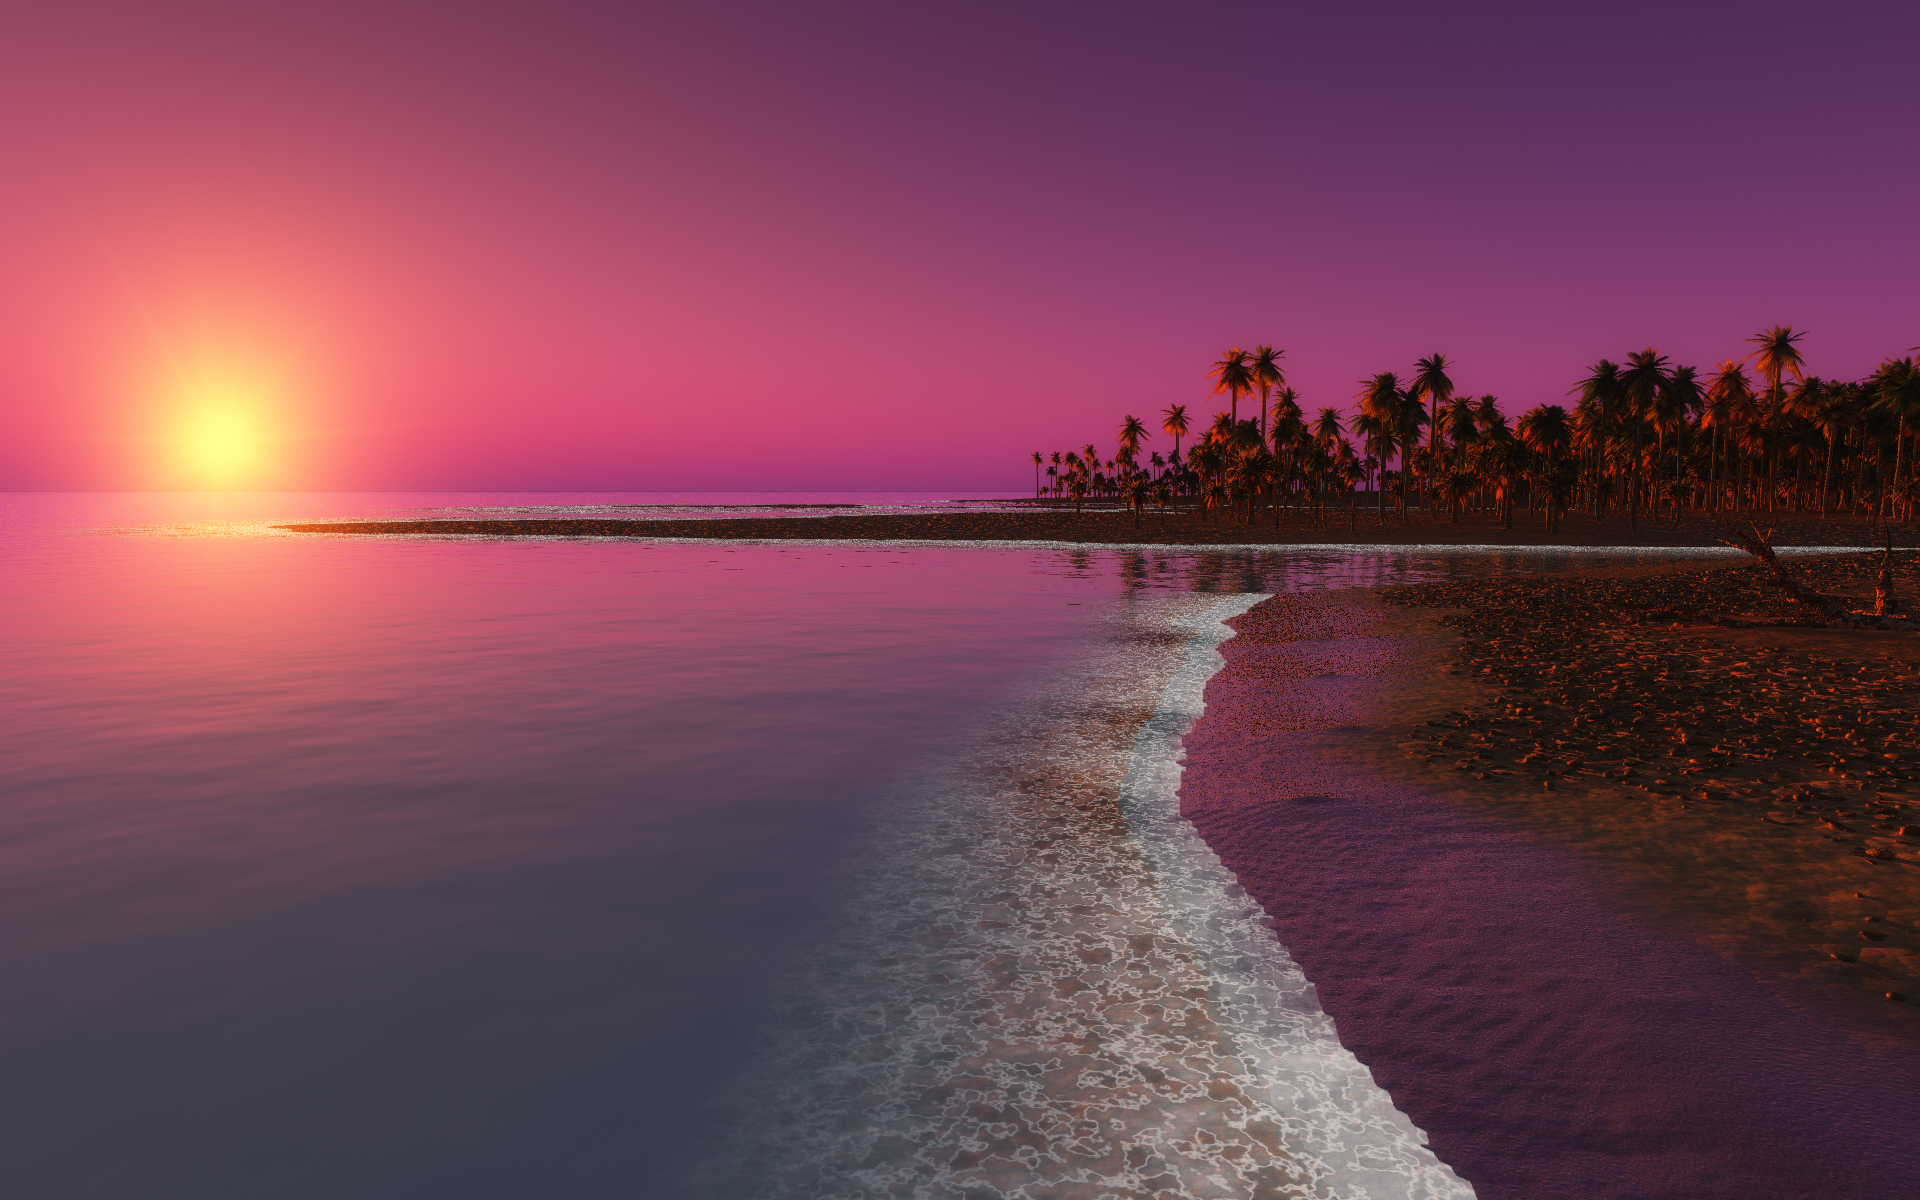 Image: Twilight Sunset, Summer Wallpapers And Stock Photos. «